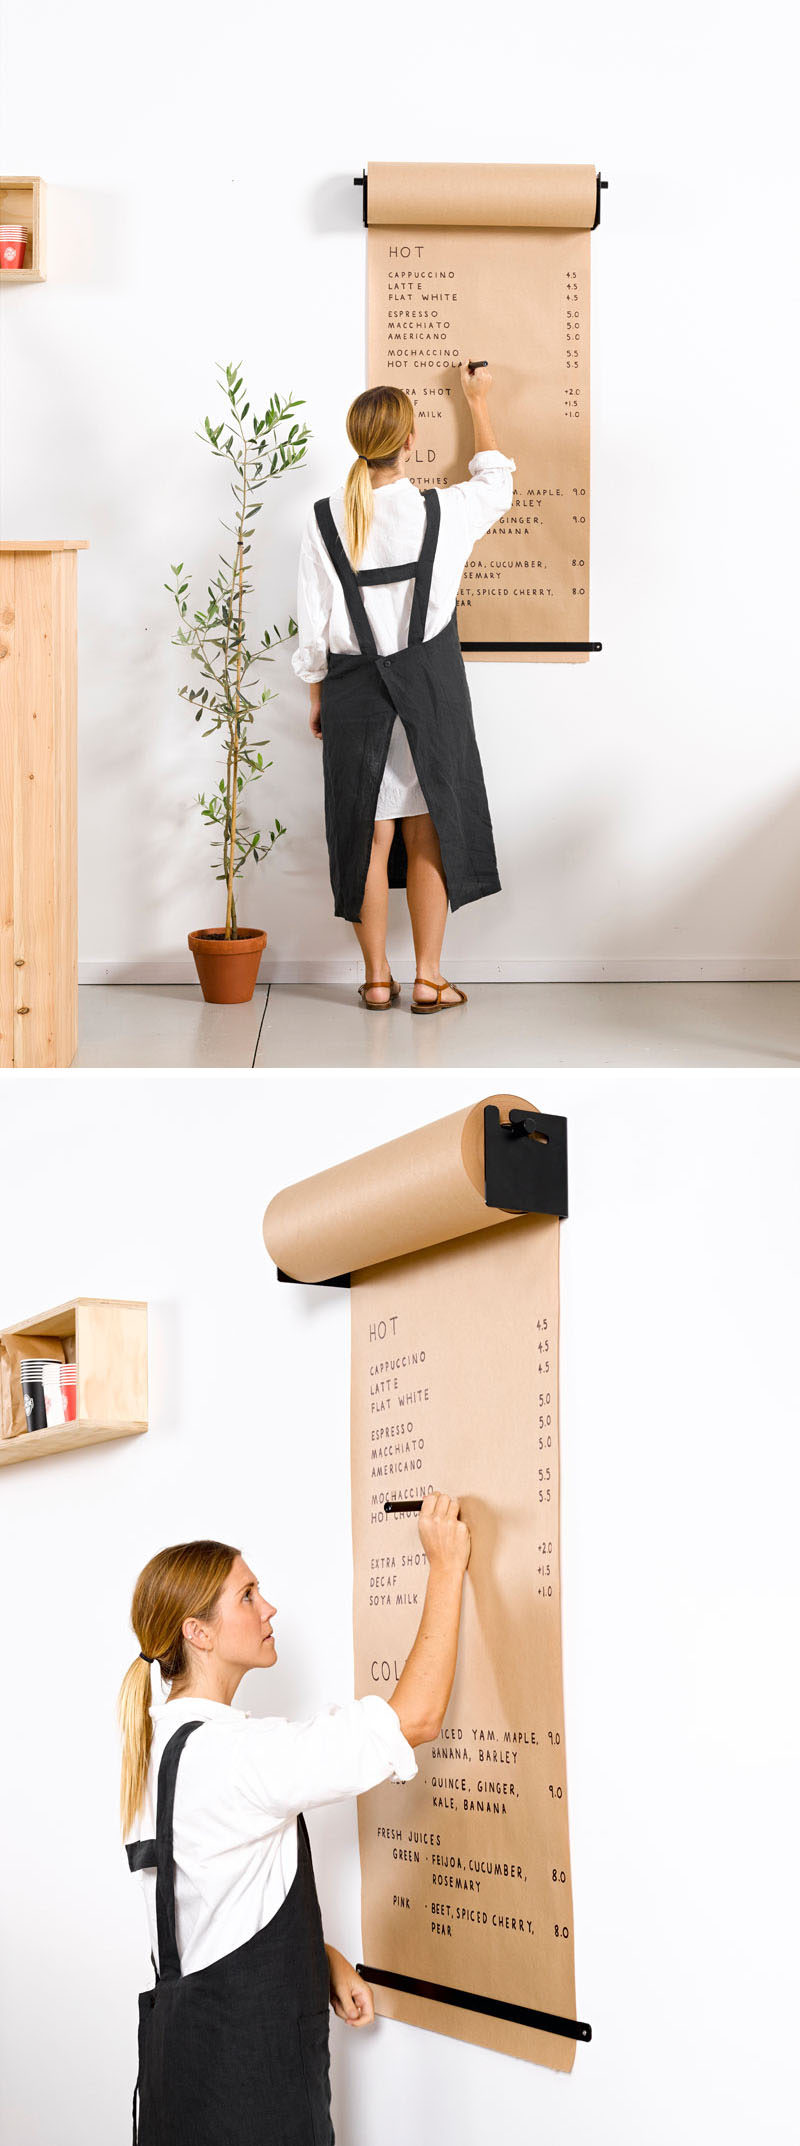 Minimalist and functional, the Studio Roller, designed by lifestyle company George & Willy, is a fun way to hang butcher's paper.